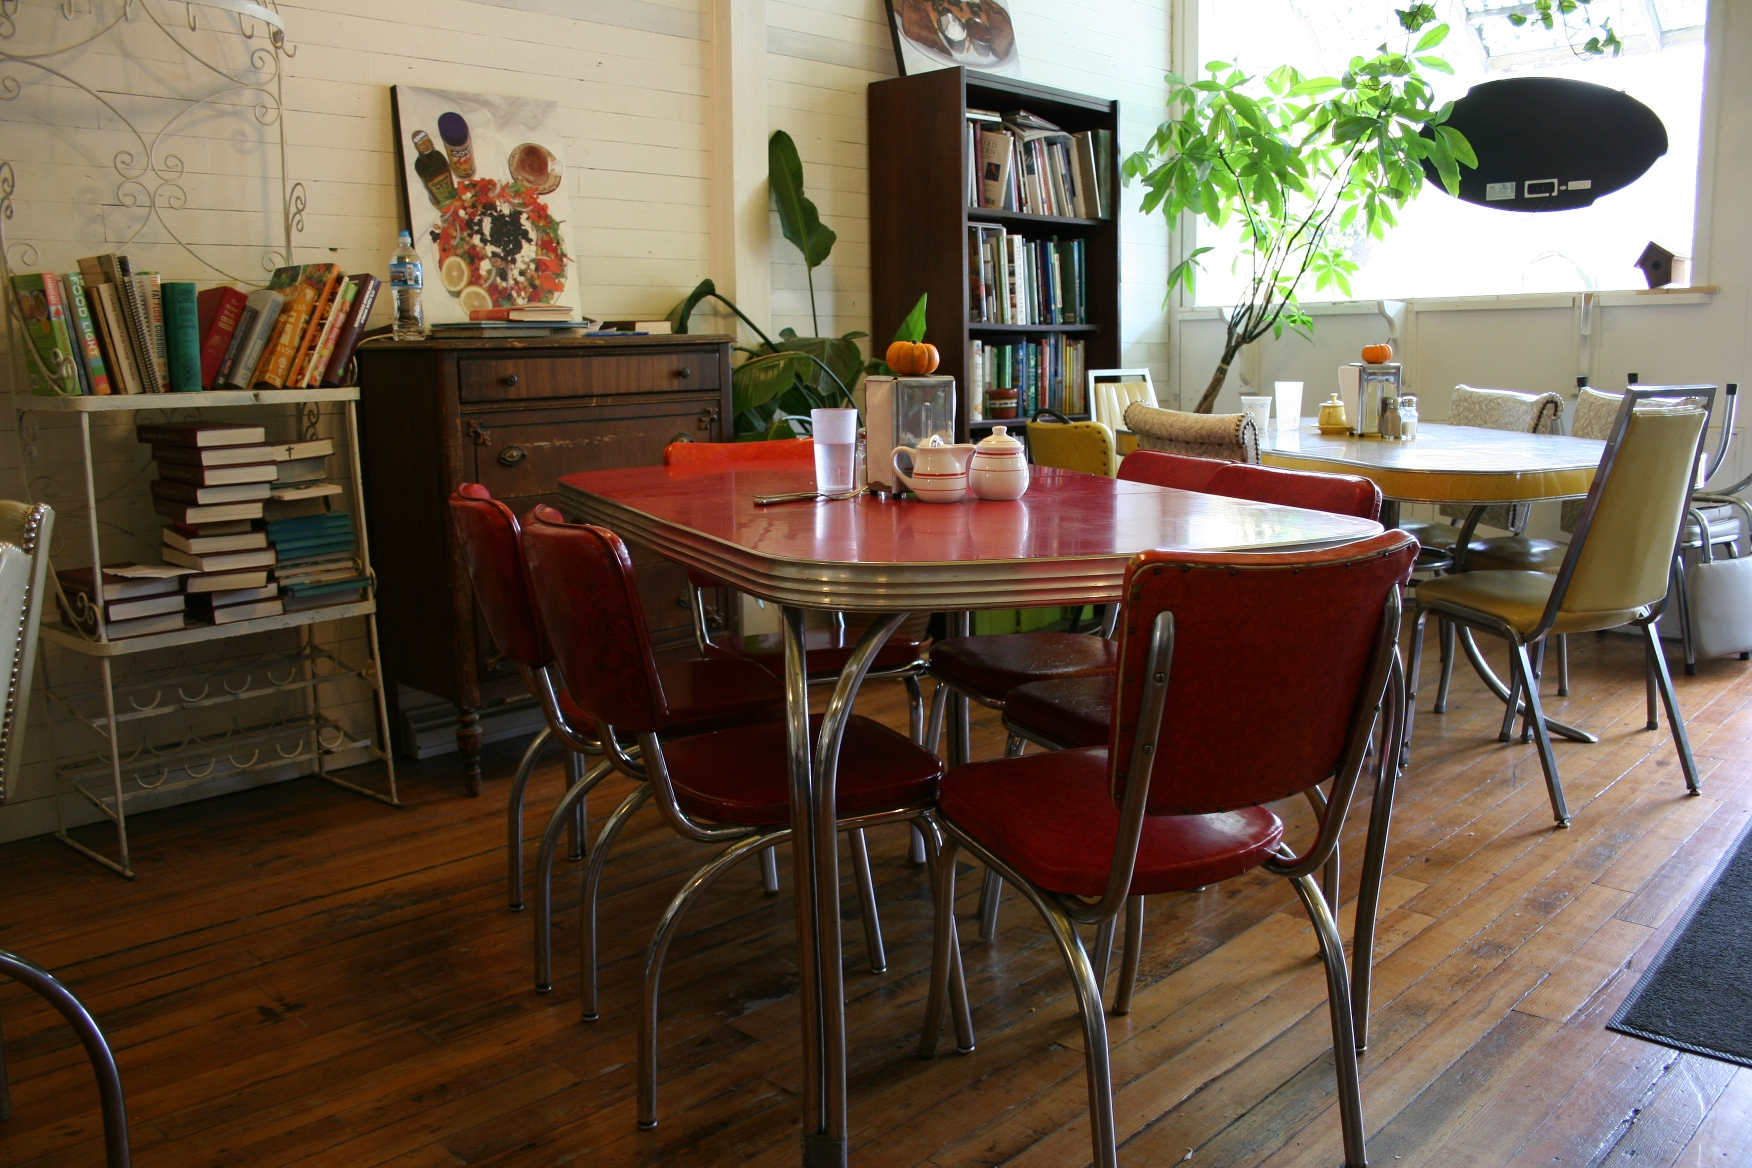 Vintage cafe table and chairs - This